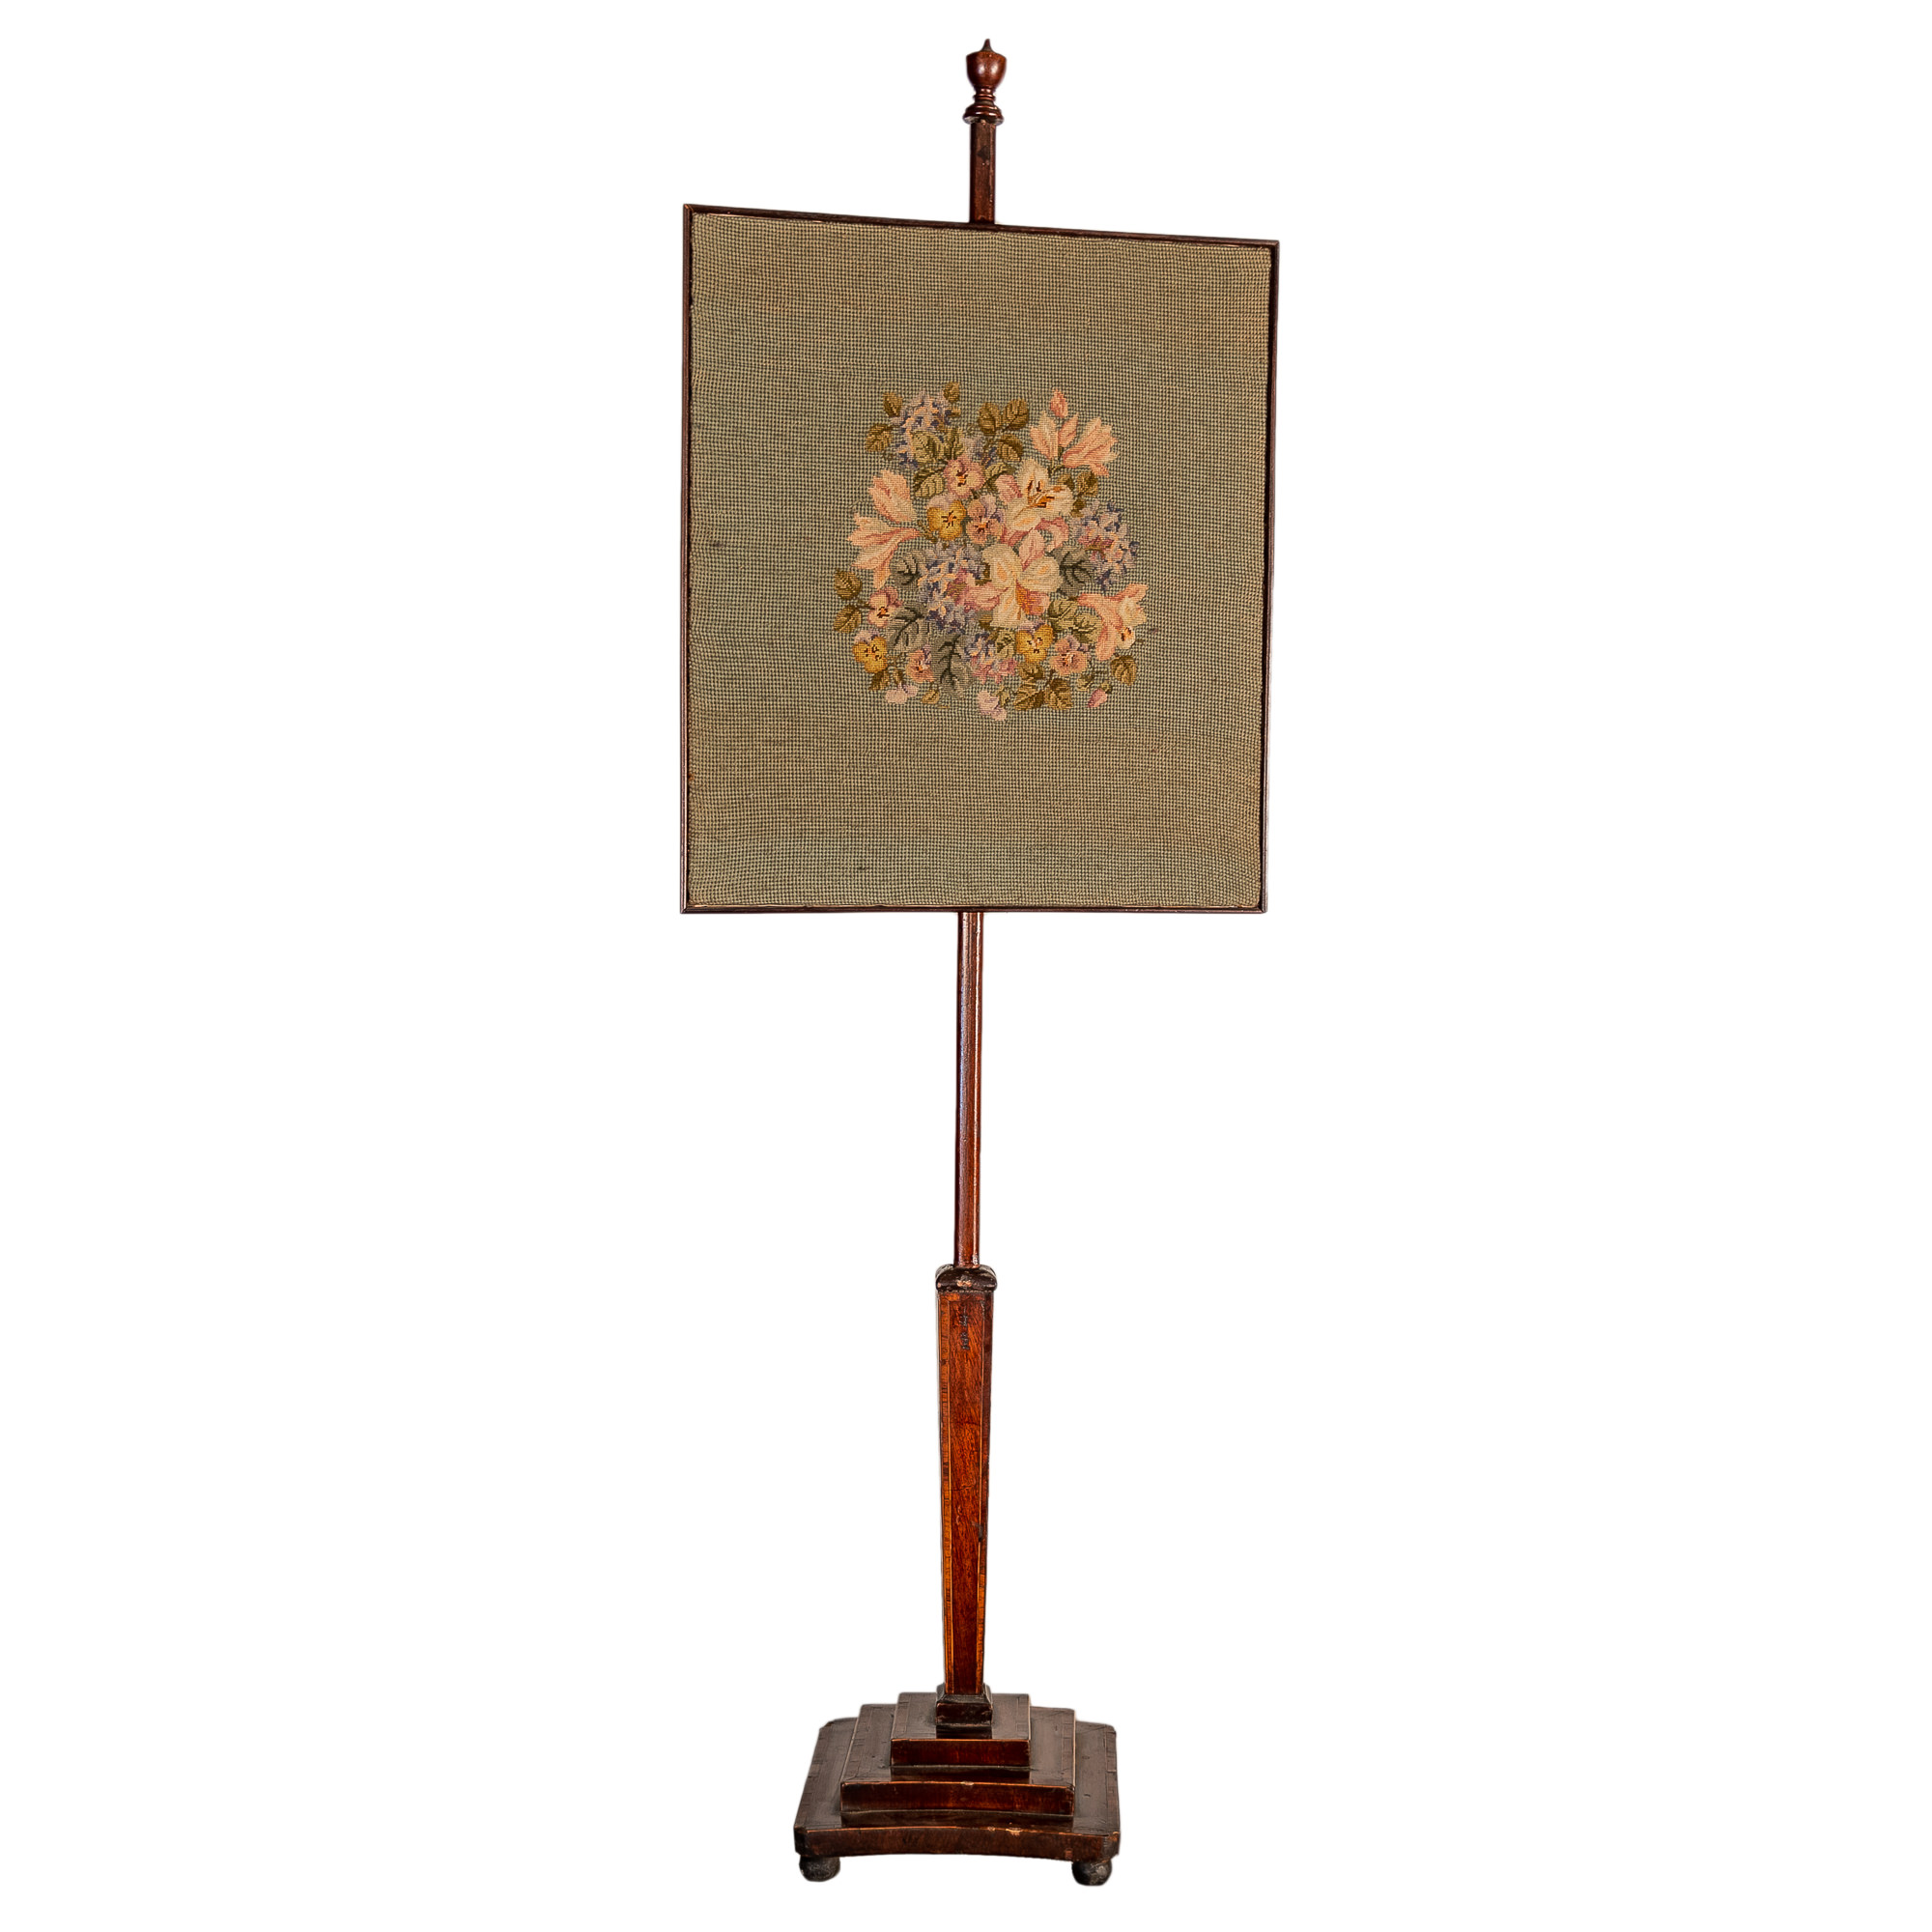 'Mahogany Pole Screen with Needlepoint Embroidered Floral Panel'